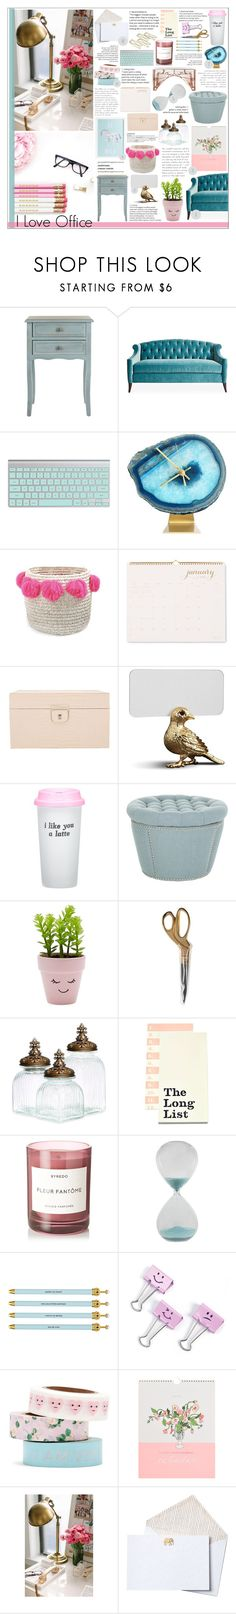 """""""Pink & Blue Office"""" by honey-beans-xo ❤ liked on Polyvore featuring interior, interiors, interior design, home, home decor, interior decorating, Safavieh, Kristin Drohan Collection, Gaudì and Sugar Paper"""